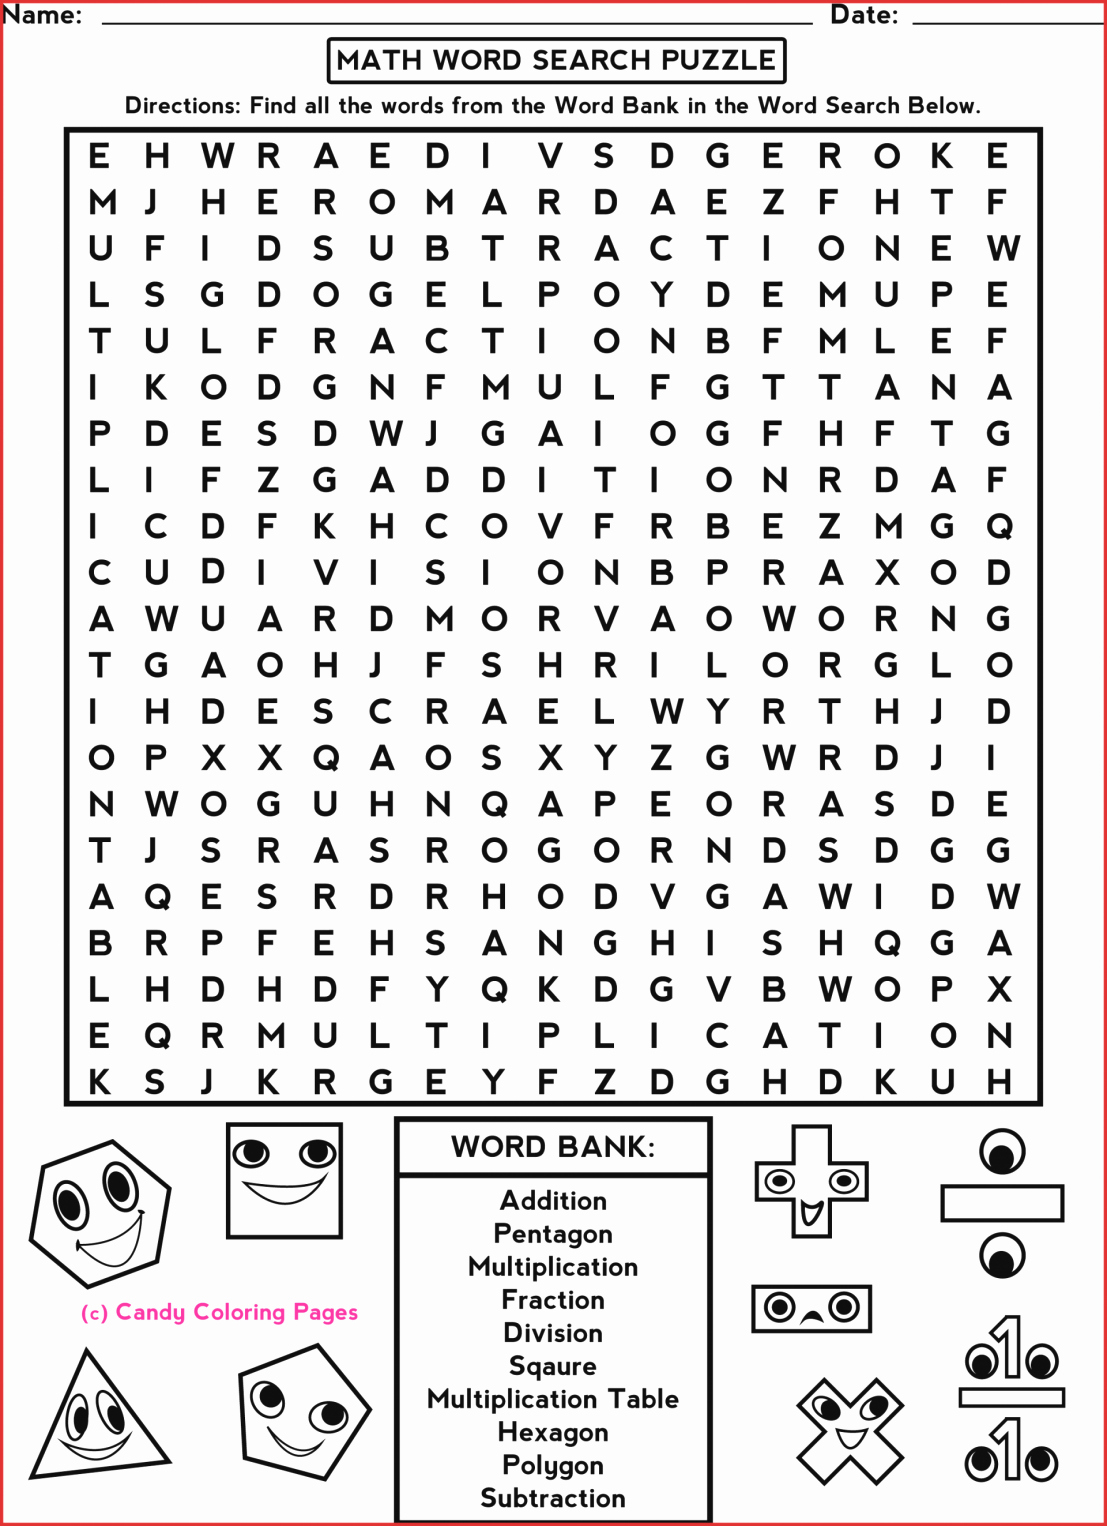 7Th Grade Crossword Puzzles Fresh 7Th Grade Math Word Search - Free Printable Crossword Puzzles For 7Th Graders